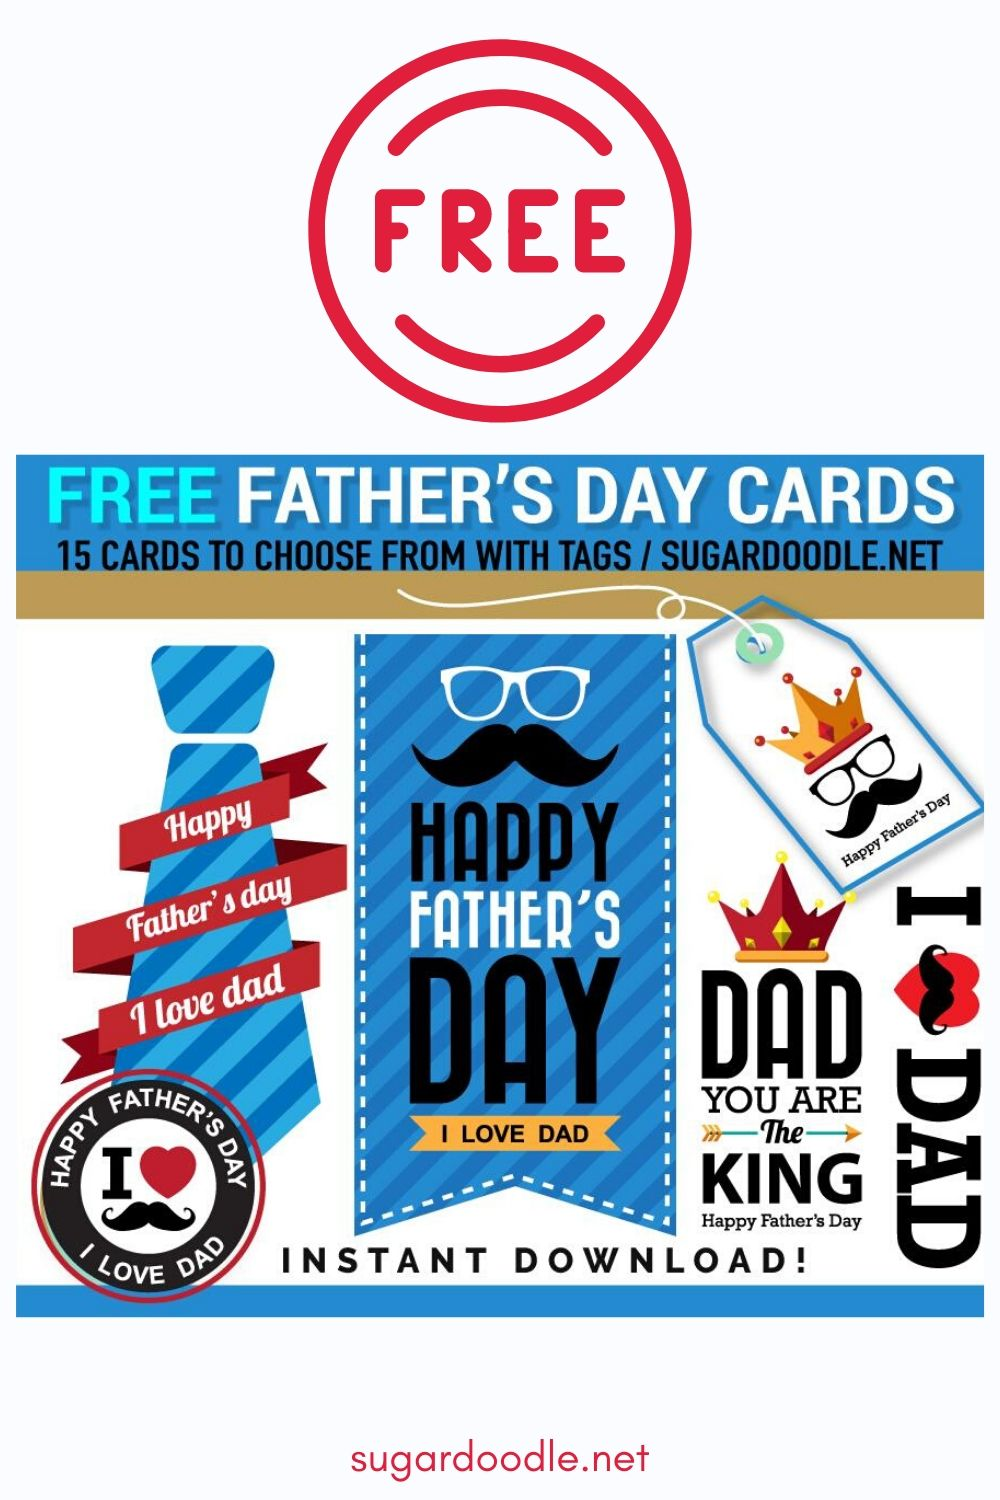 We have LOTS of FREE Father's Day cards and gift tags to choose from. Just download and print. #fathersday #fathers #cards #dad